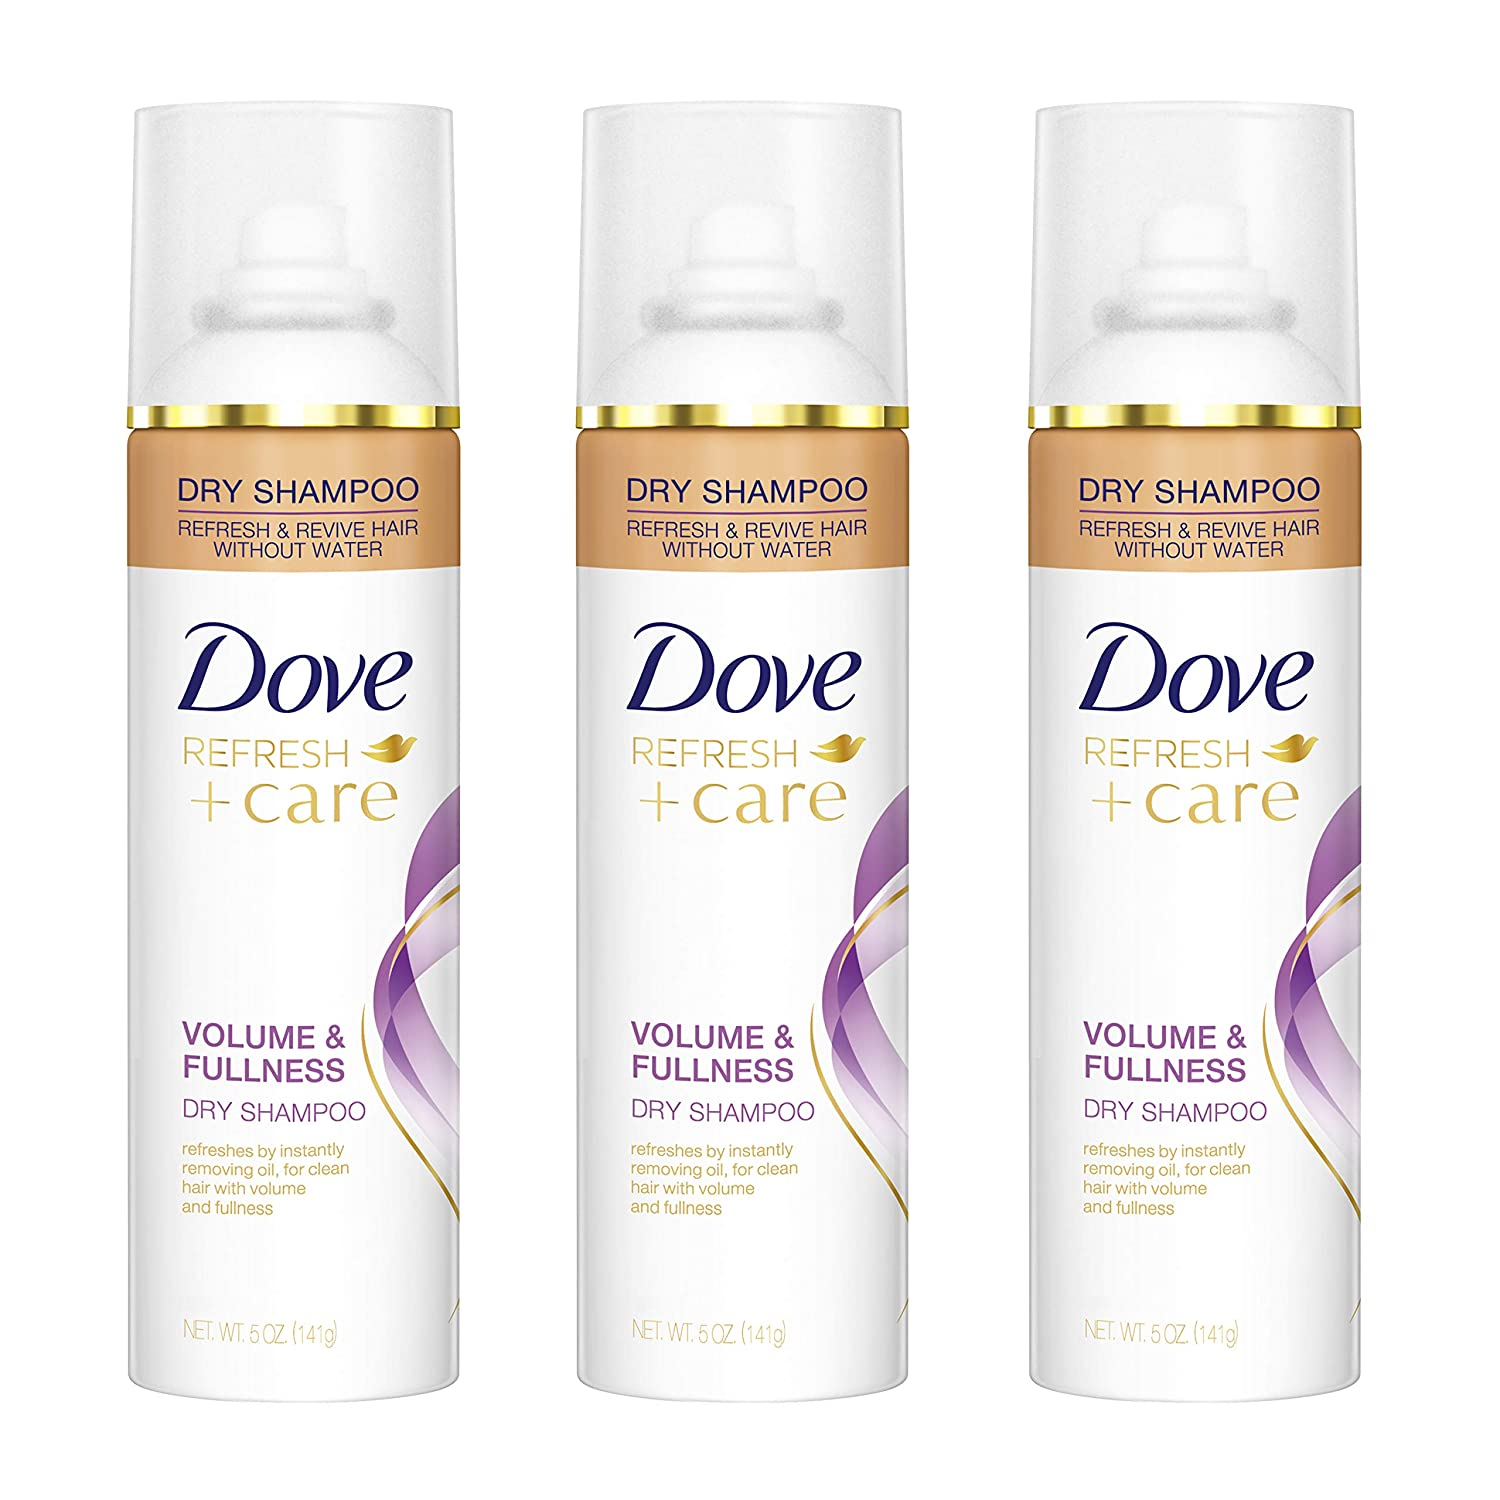 Dove Refresh+Care Dry Shampoo, Volume & Fullness, 5 oz, Pack of 3